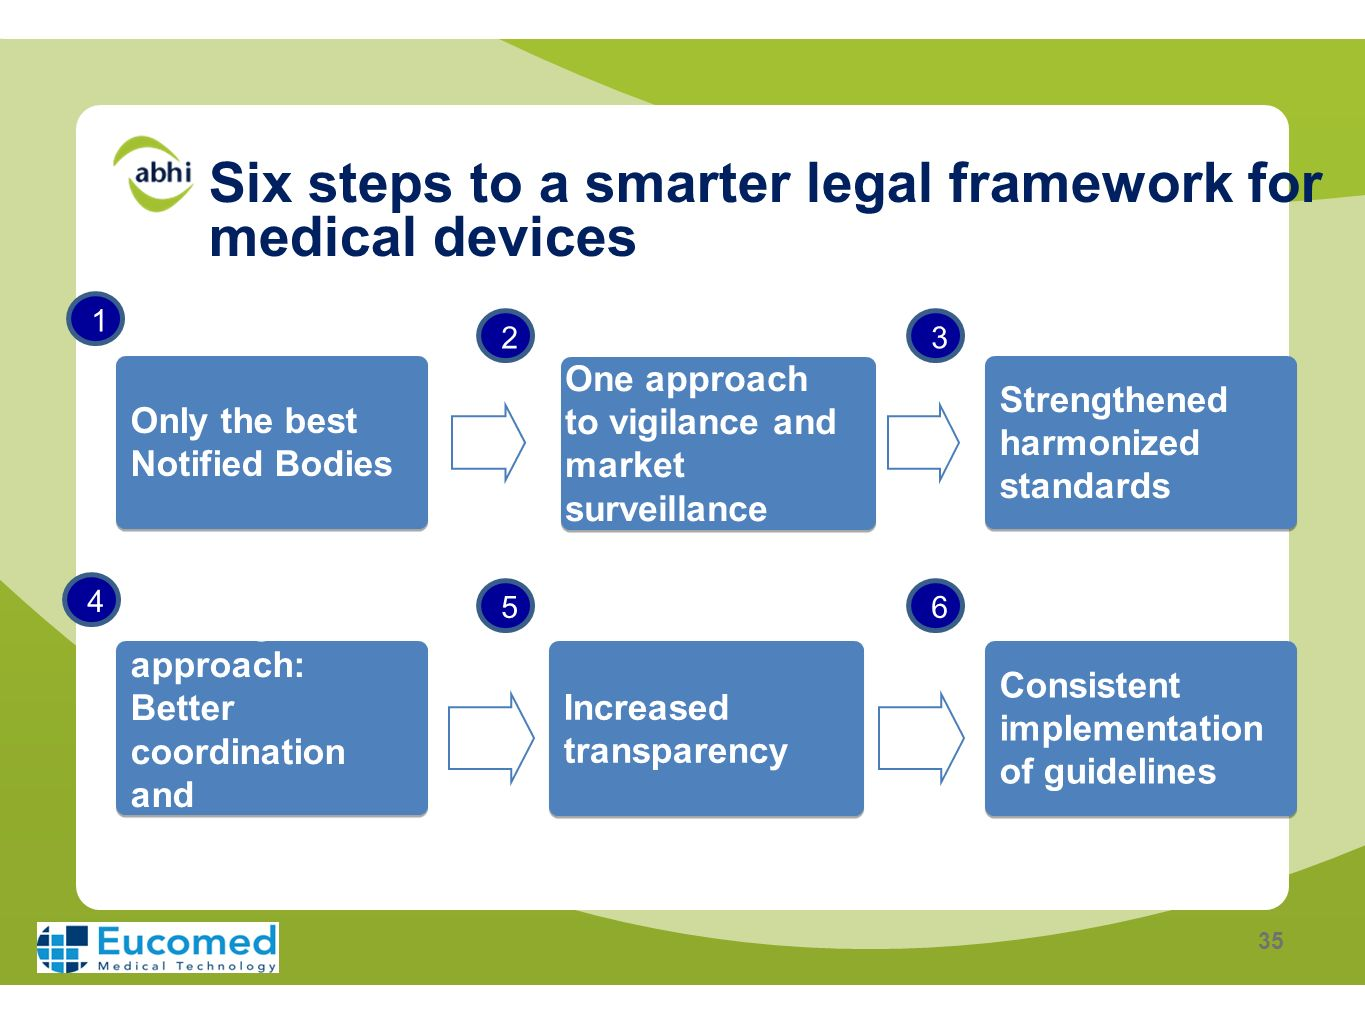 Six steps to a smarter legal framework for medical devices